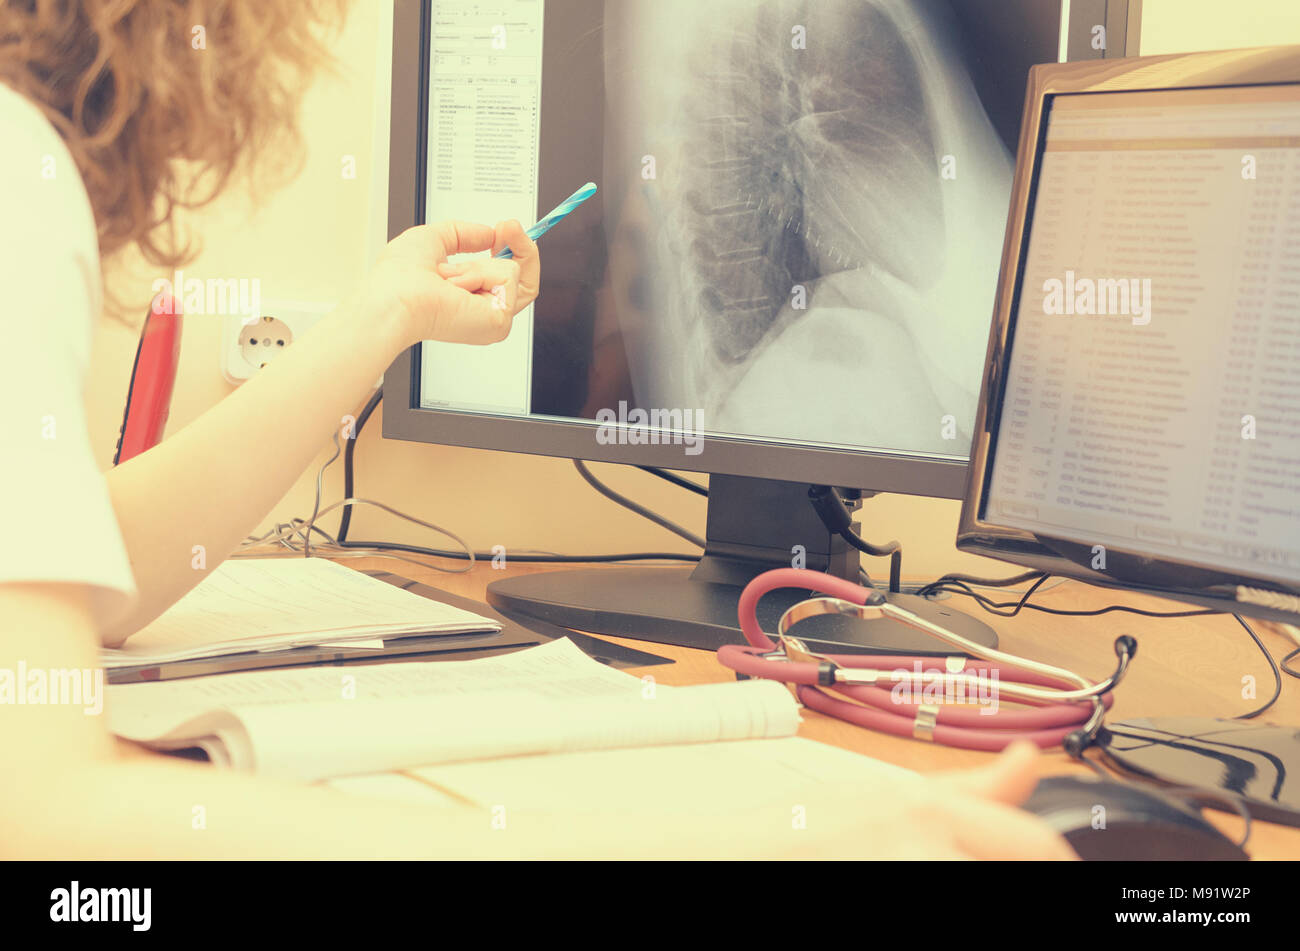 The radiologist looks at the x-ray images on a computer monitor. - Stock Image